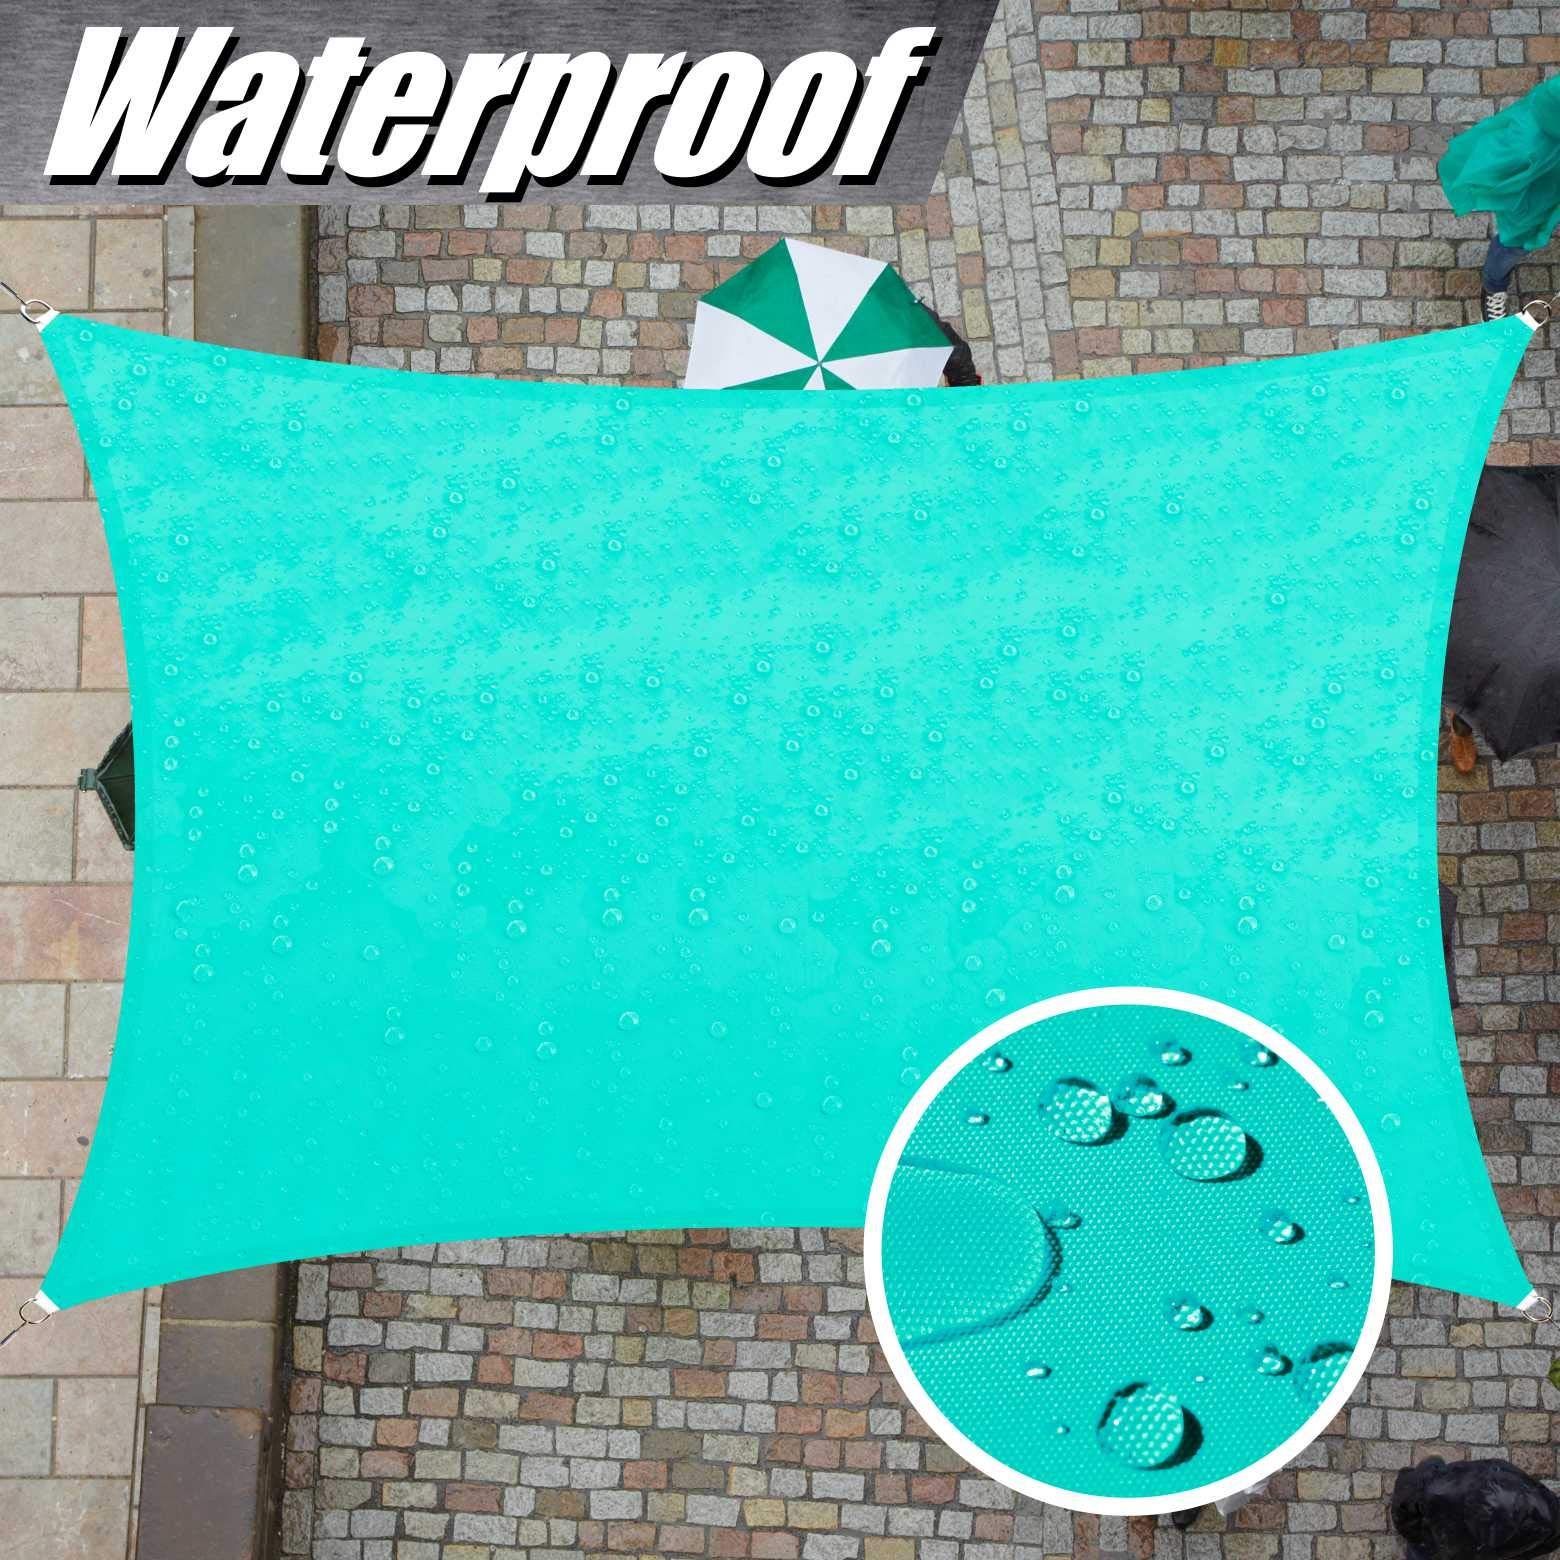 ColourTree Custom Size 4' x 7' Turquoise TADR0712 Rectangle Waterproof Sun Shade Sail Canopy Awning Shelter, 95% UV Block Water Resistant, Garden Carport Outdoor Patio (We Customize)